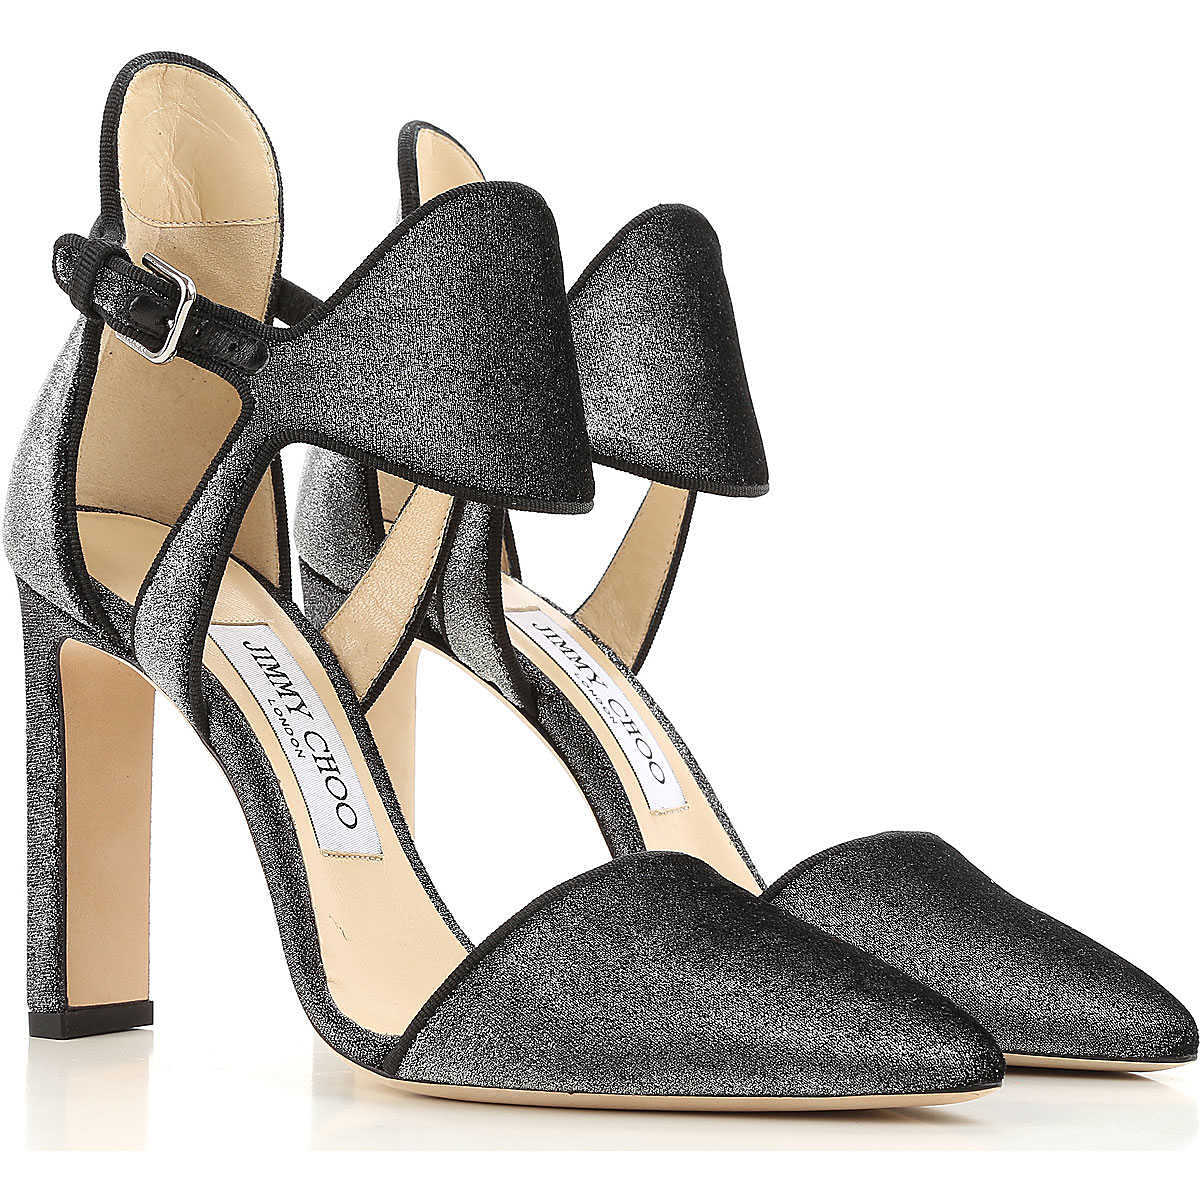 Jimmy Choo Pumps & High Heels for Women in Outlet Anthracite Canada - GOOFASH - Womens PUMPS